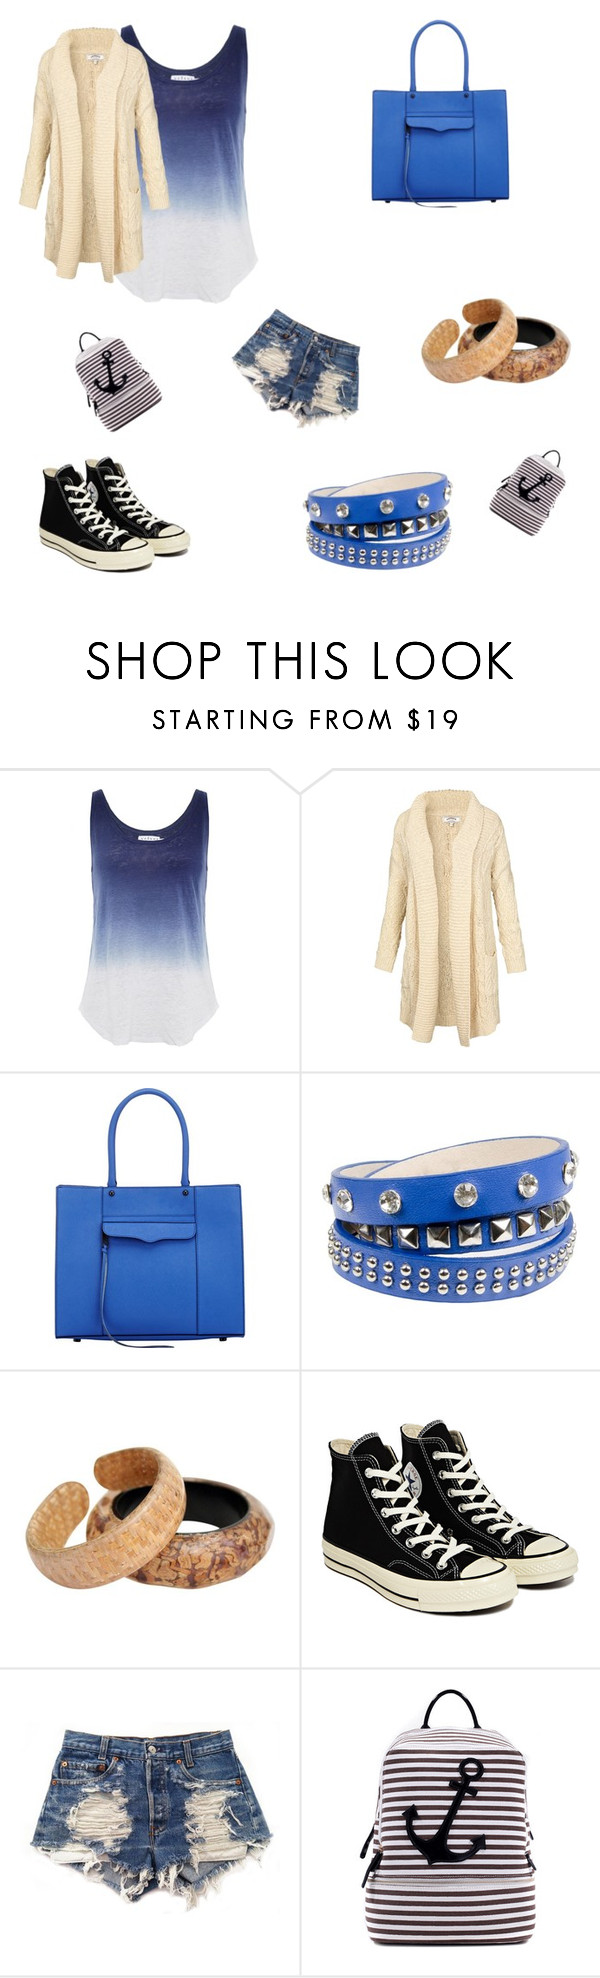 """""""School mall shopping"""" by marleybrasfield22 ❤ liked on Polyvore featuring Velvet by Graham & Spencer, Fat Face, Rebecca Minkoff, Lipsy, Converse, Levi's and Dasein"""